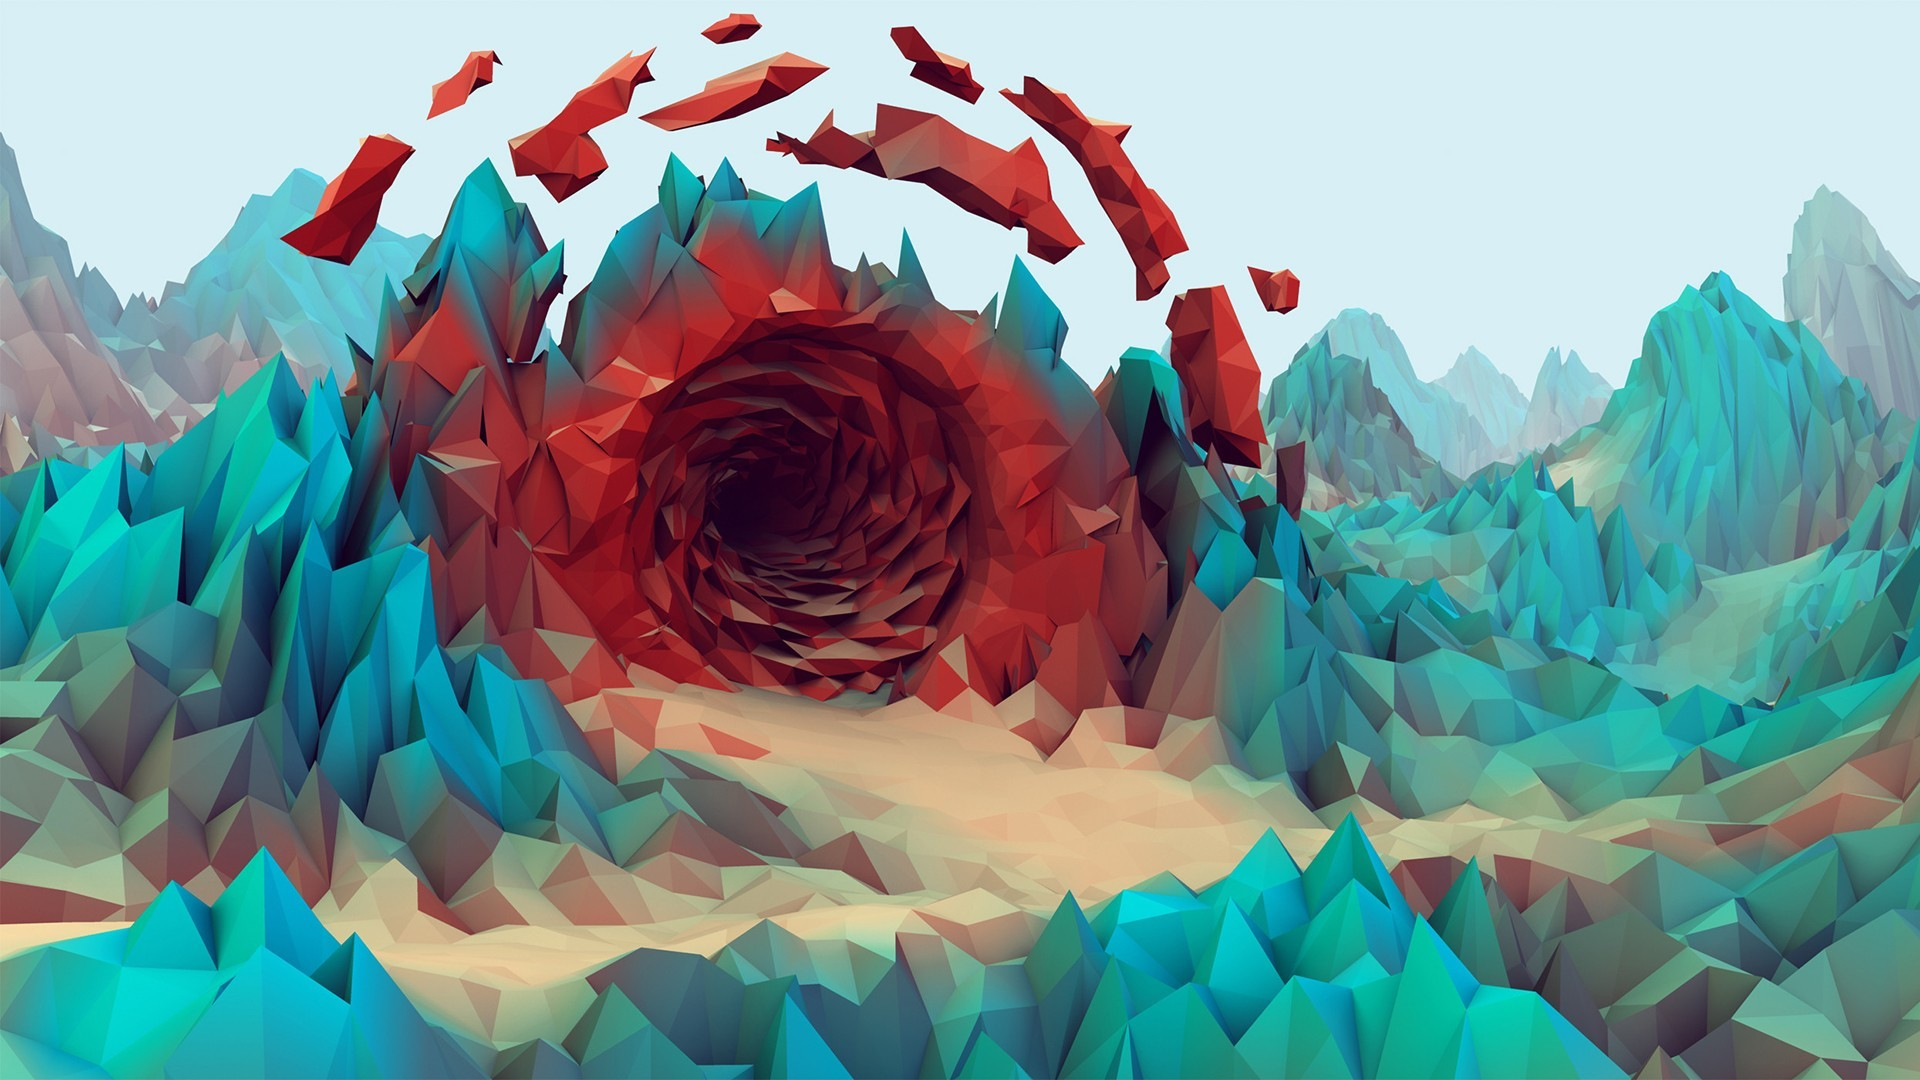 Low Polygon Cave Wallpaper | 2400×1200 | ID:50780 | Branding | Pinterest |  Low poly, Wallpaper and Polygon art